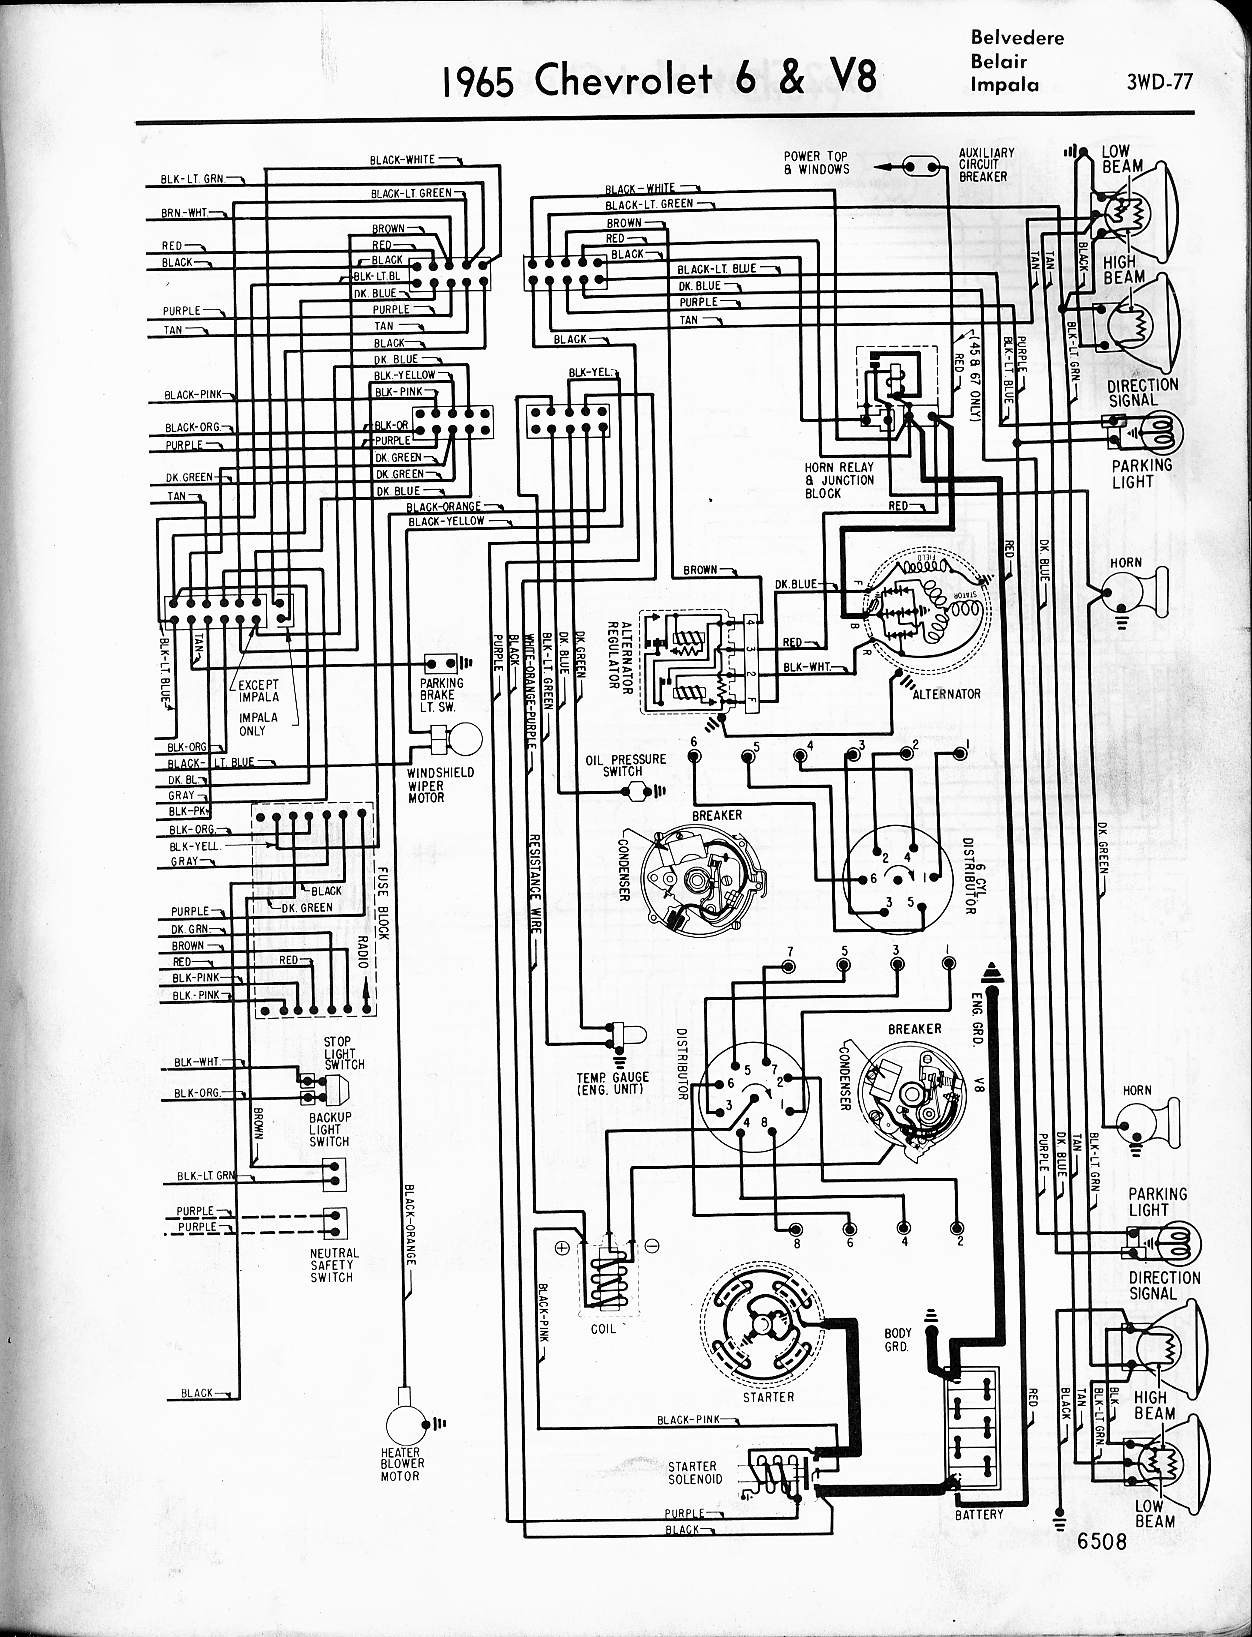 El Camino Wiring Diagram 1967 El Camino Wiring Diagram Free Example Electrical Wiring Diagram • Of El Camino Wiring Diagram 72 Charger Wiring Diagram Get Free Image About Wiring Diagram